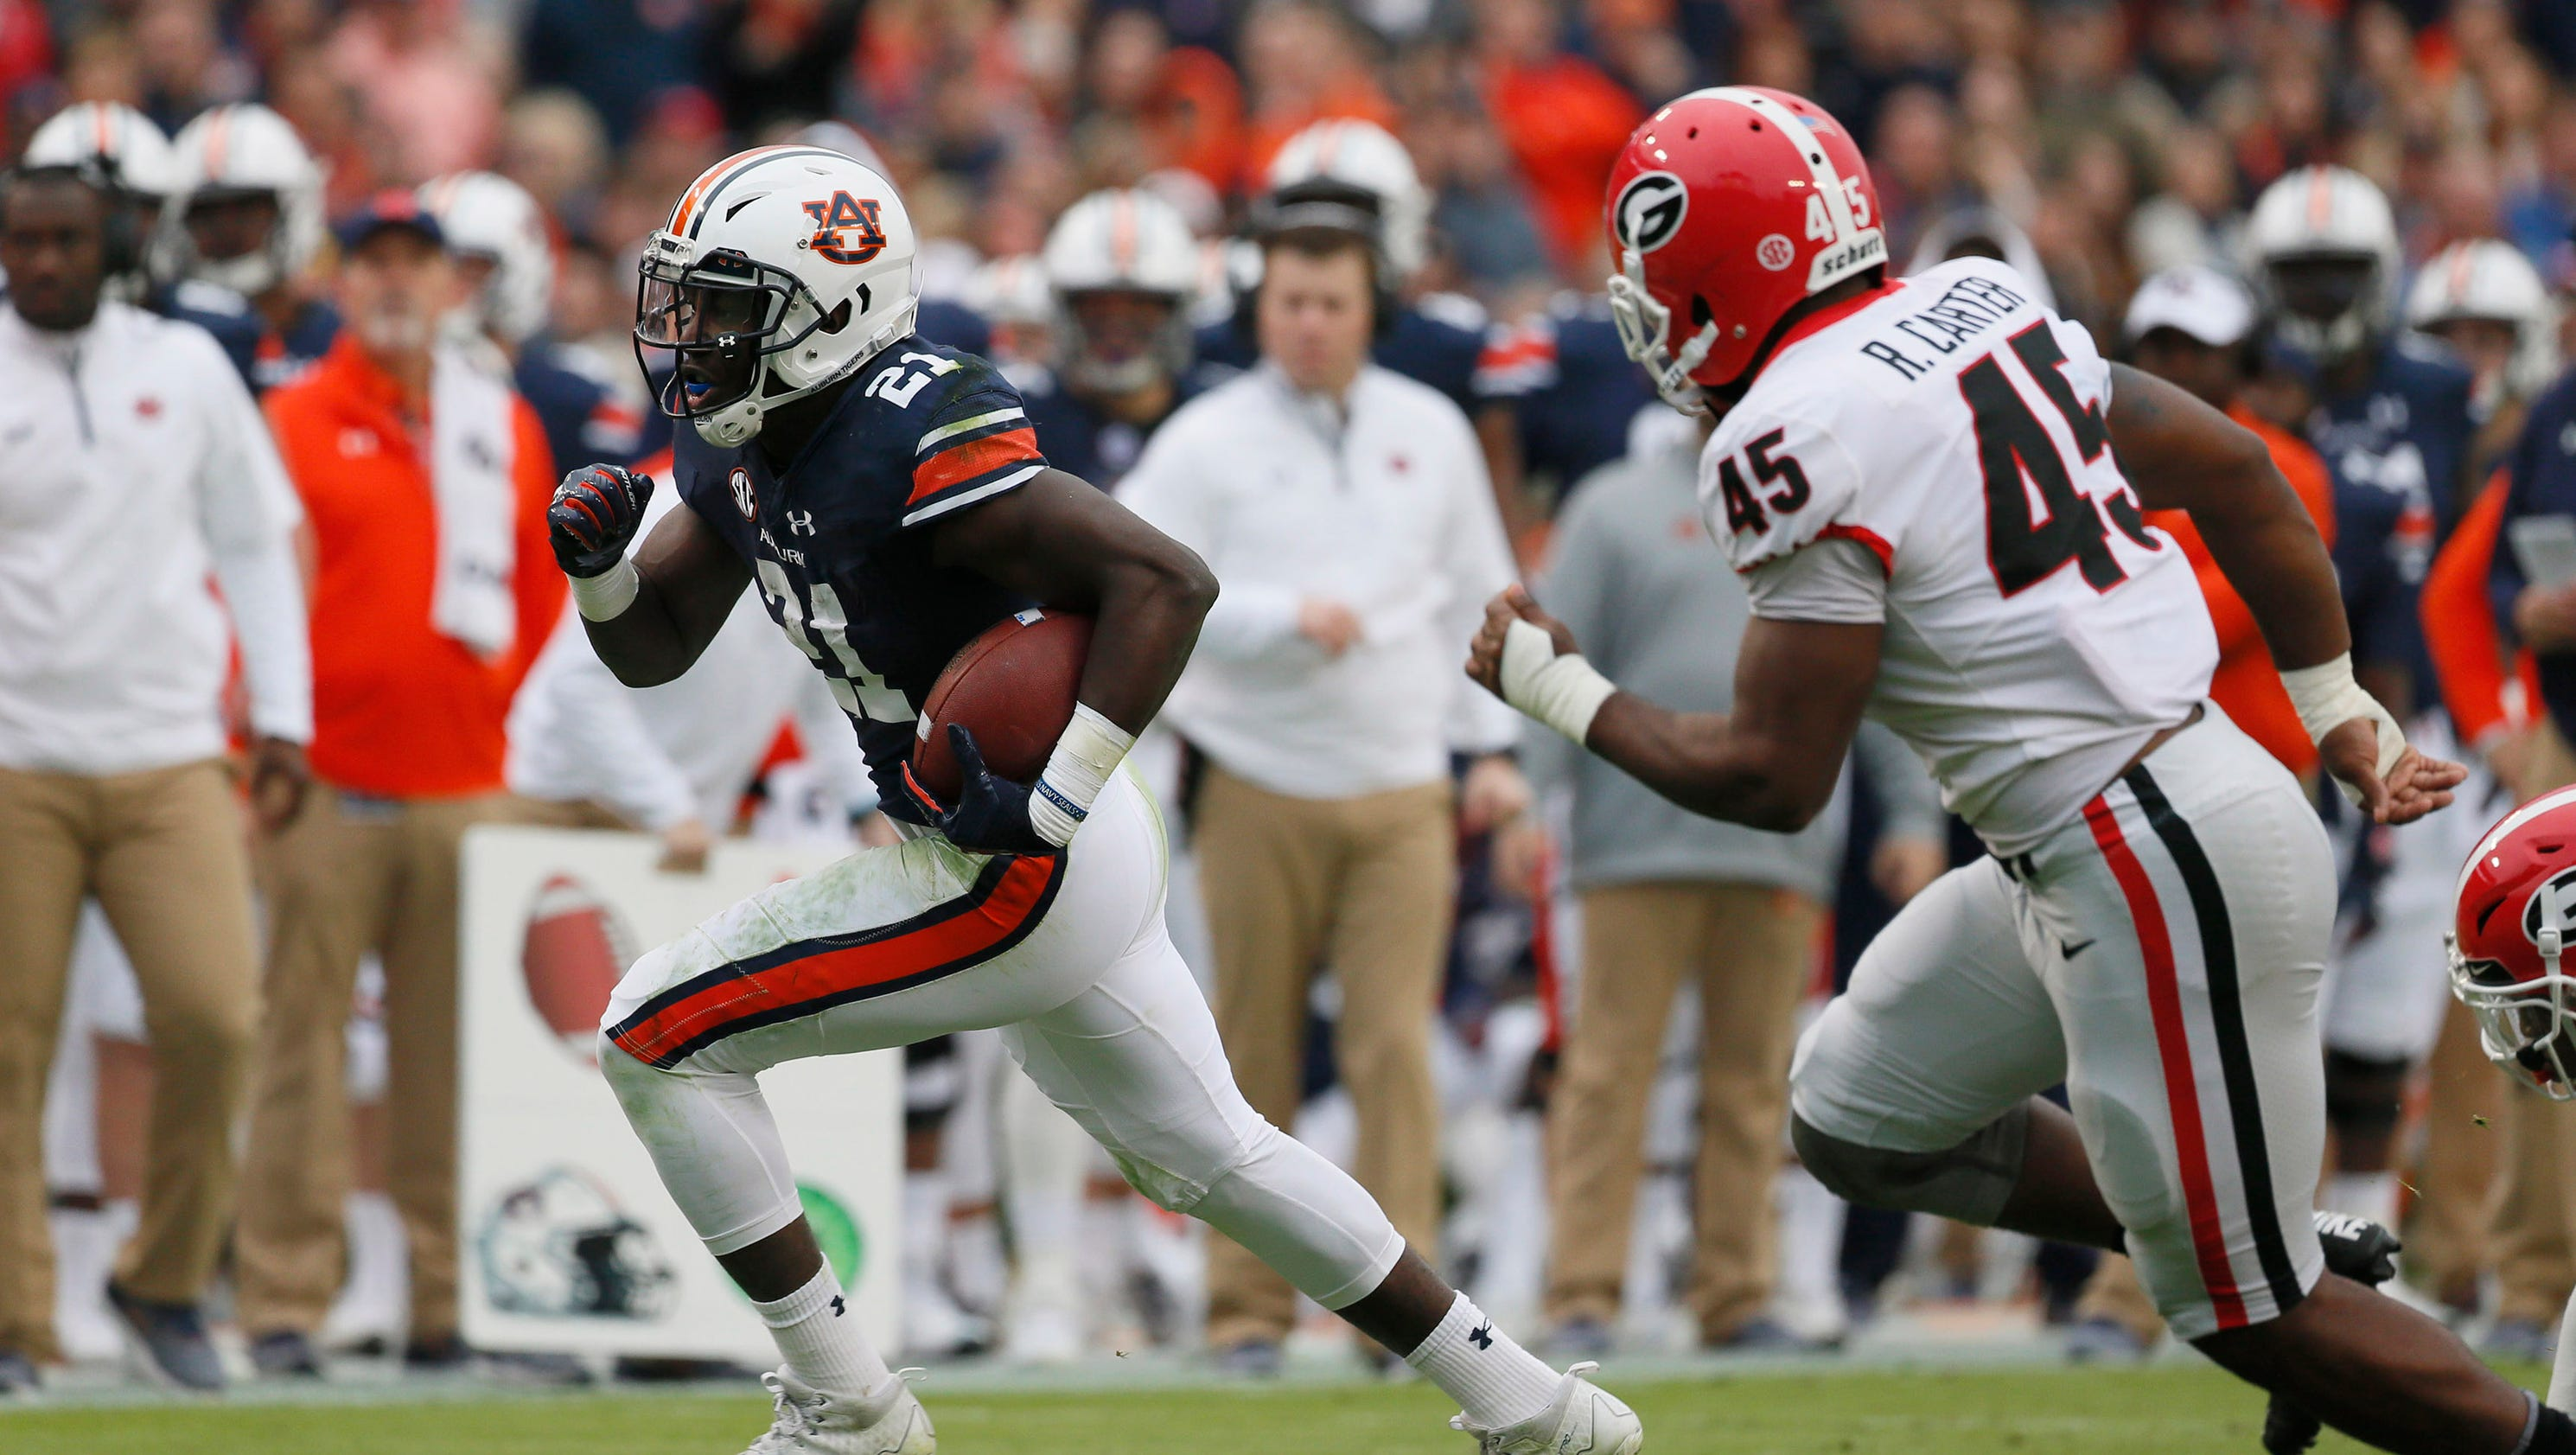 Football Playoff Rankings Out Top >> Takeaways from Auburn's win vs. Georgia: Top team in CFP rankings falls